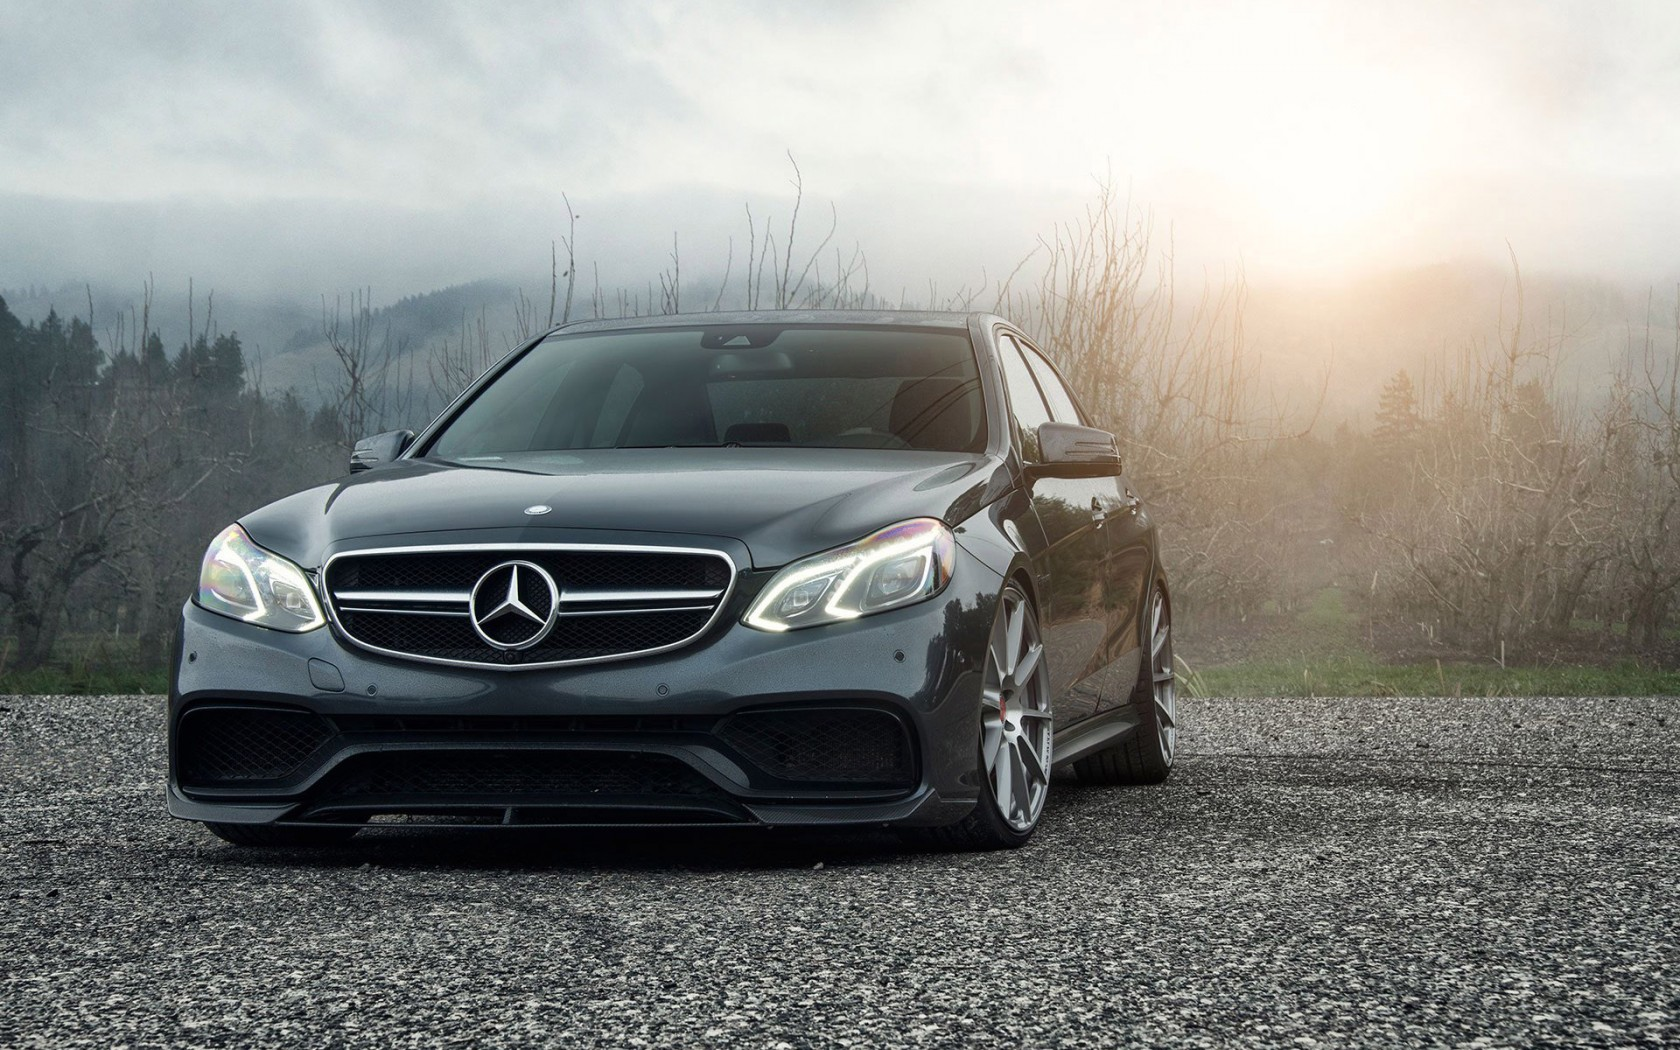 2016 Vorsteiner Mercedes Benz E63 AMG Wallpaper | HD Car Wallpapers